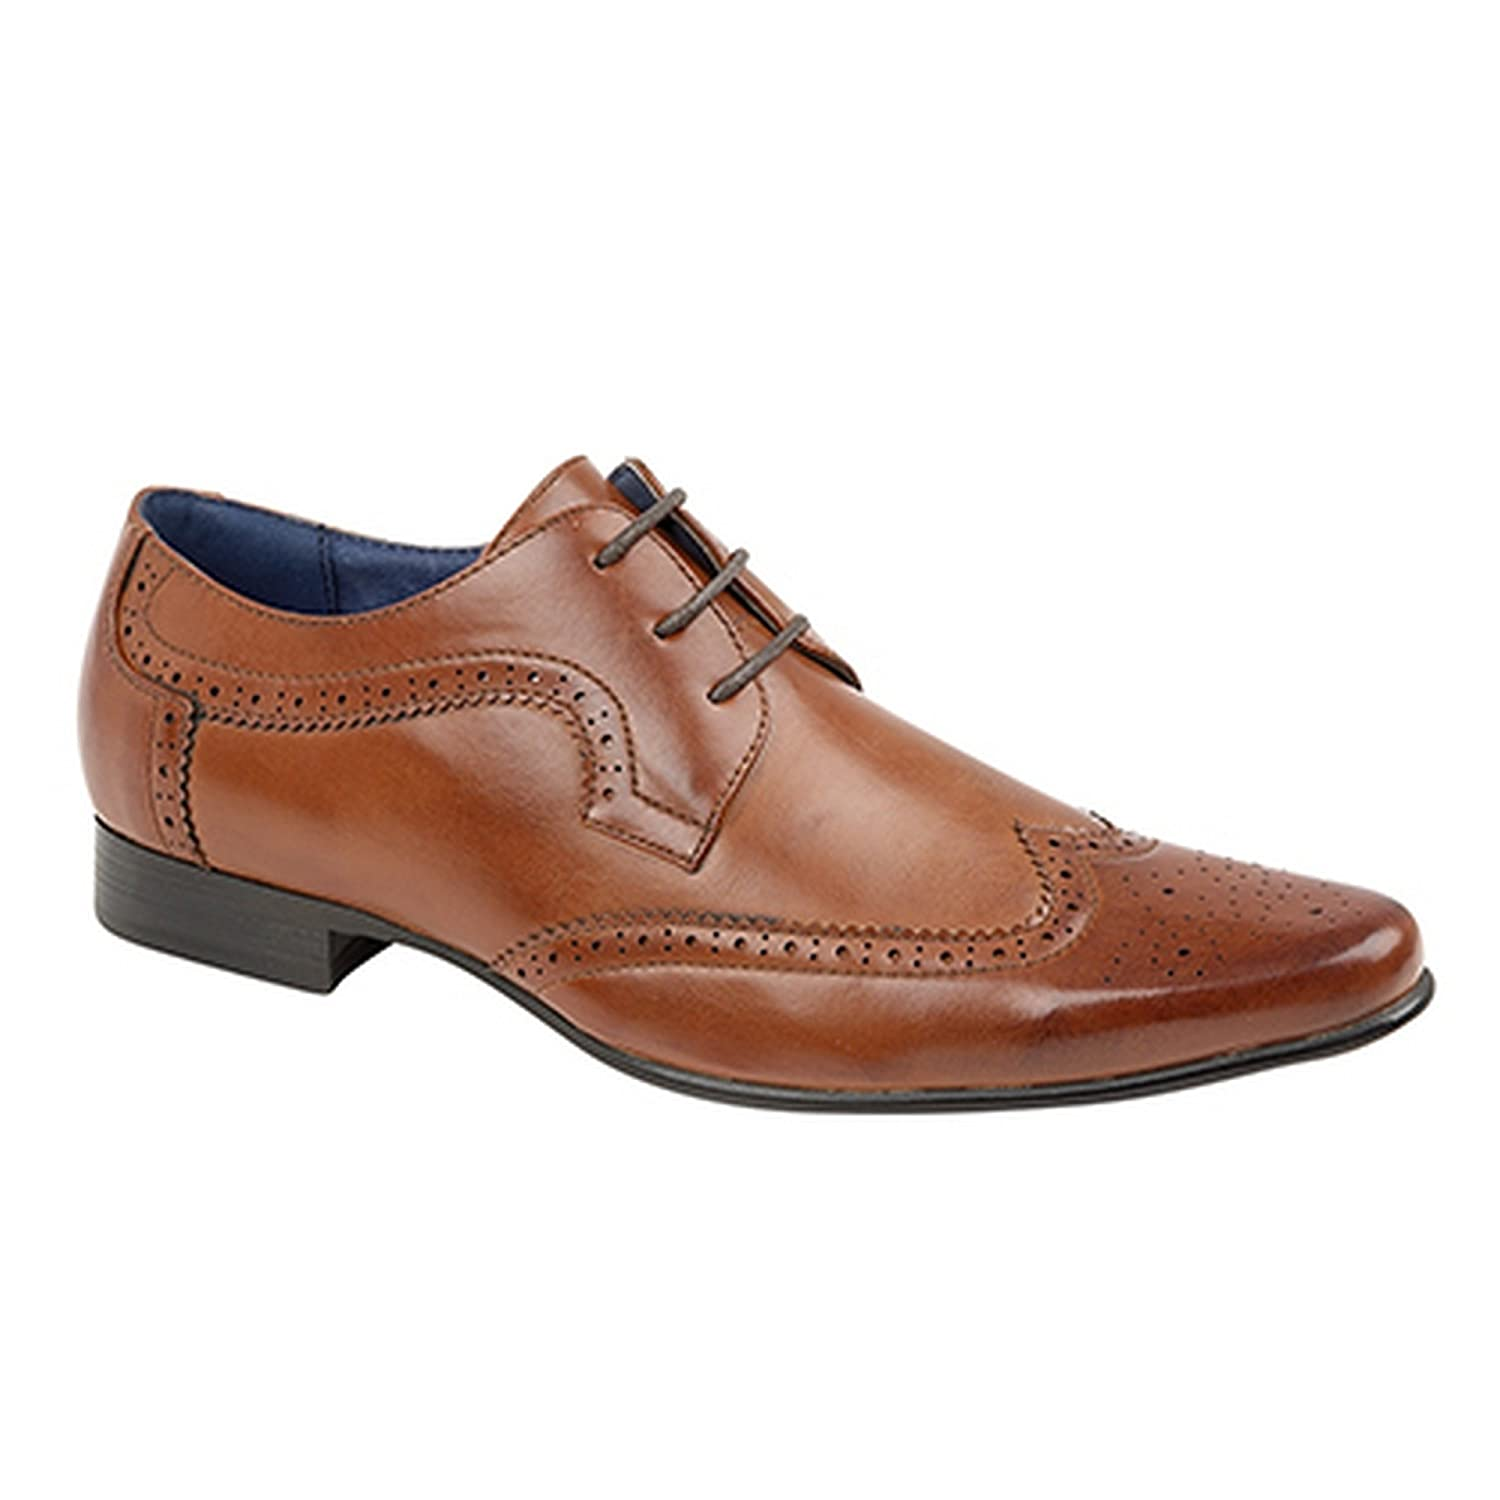 MENS ROUTE 21 TAN 3 EYELET BROGUE GIBSON LACED  SHOES 7